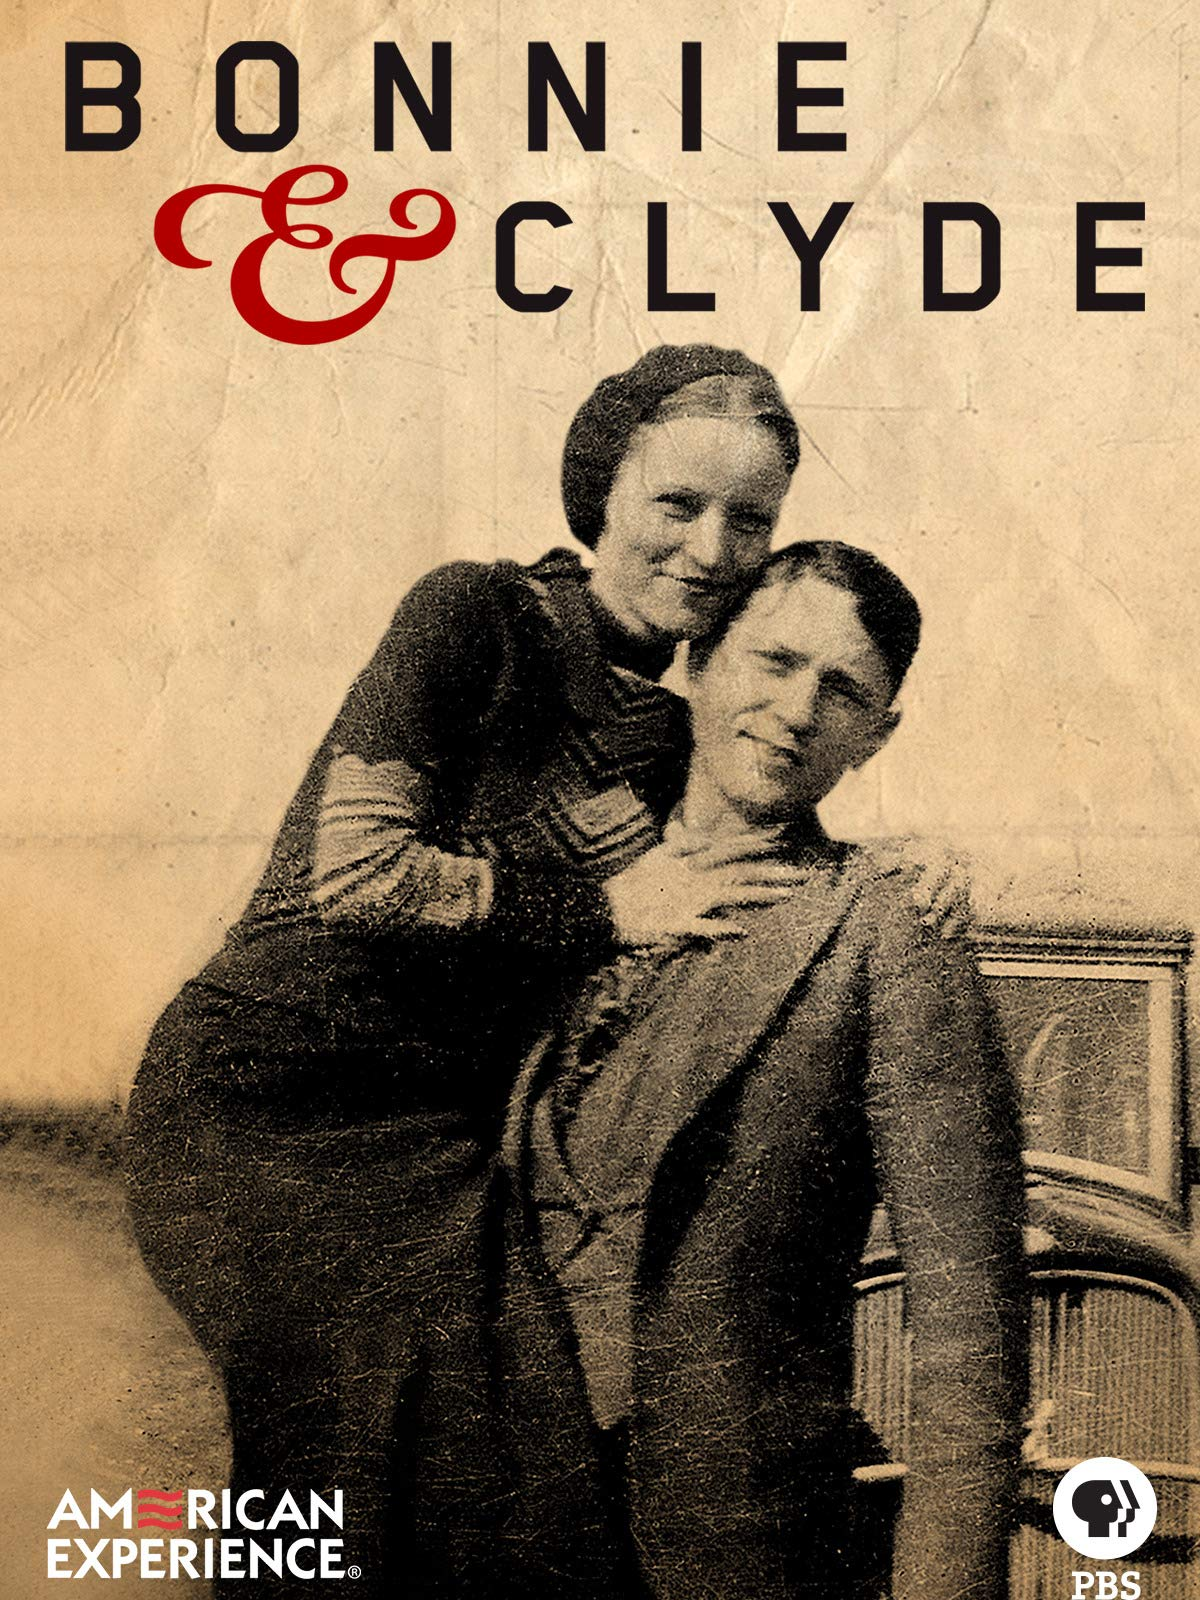 Amazon com: Watch American Experience: Bonnie and Clyde | Prime Video